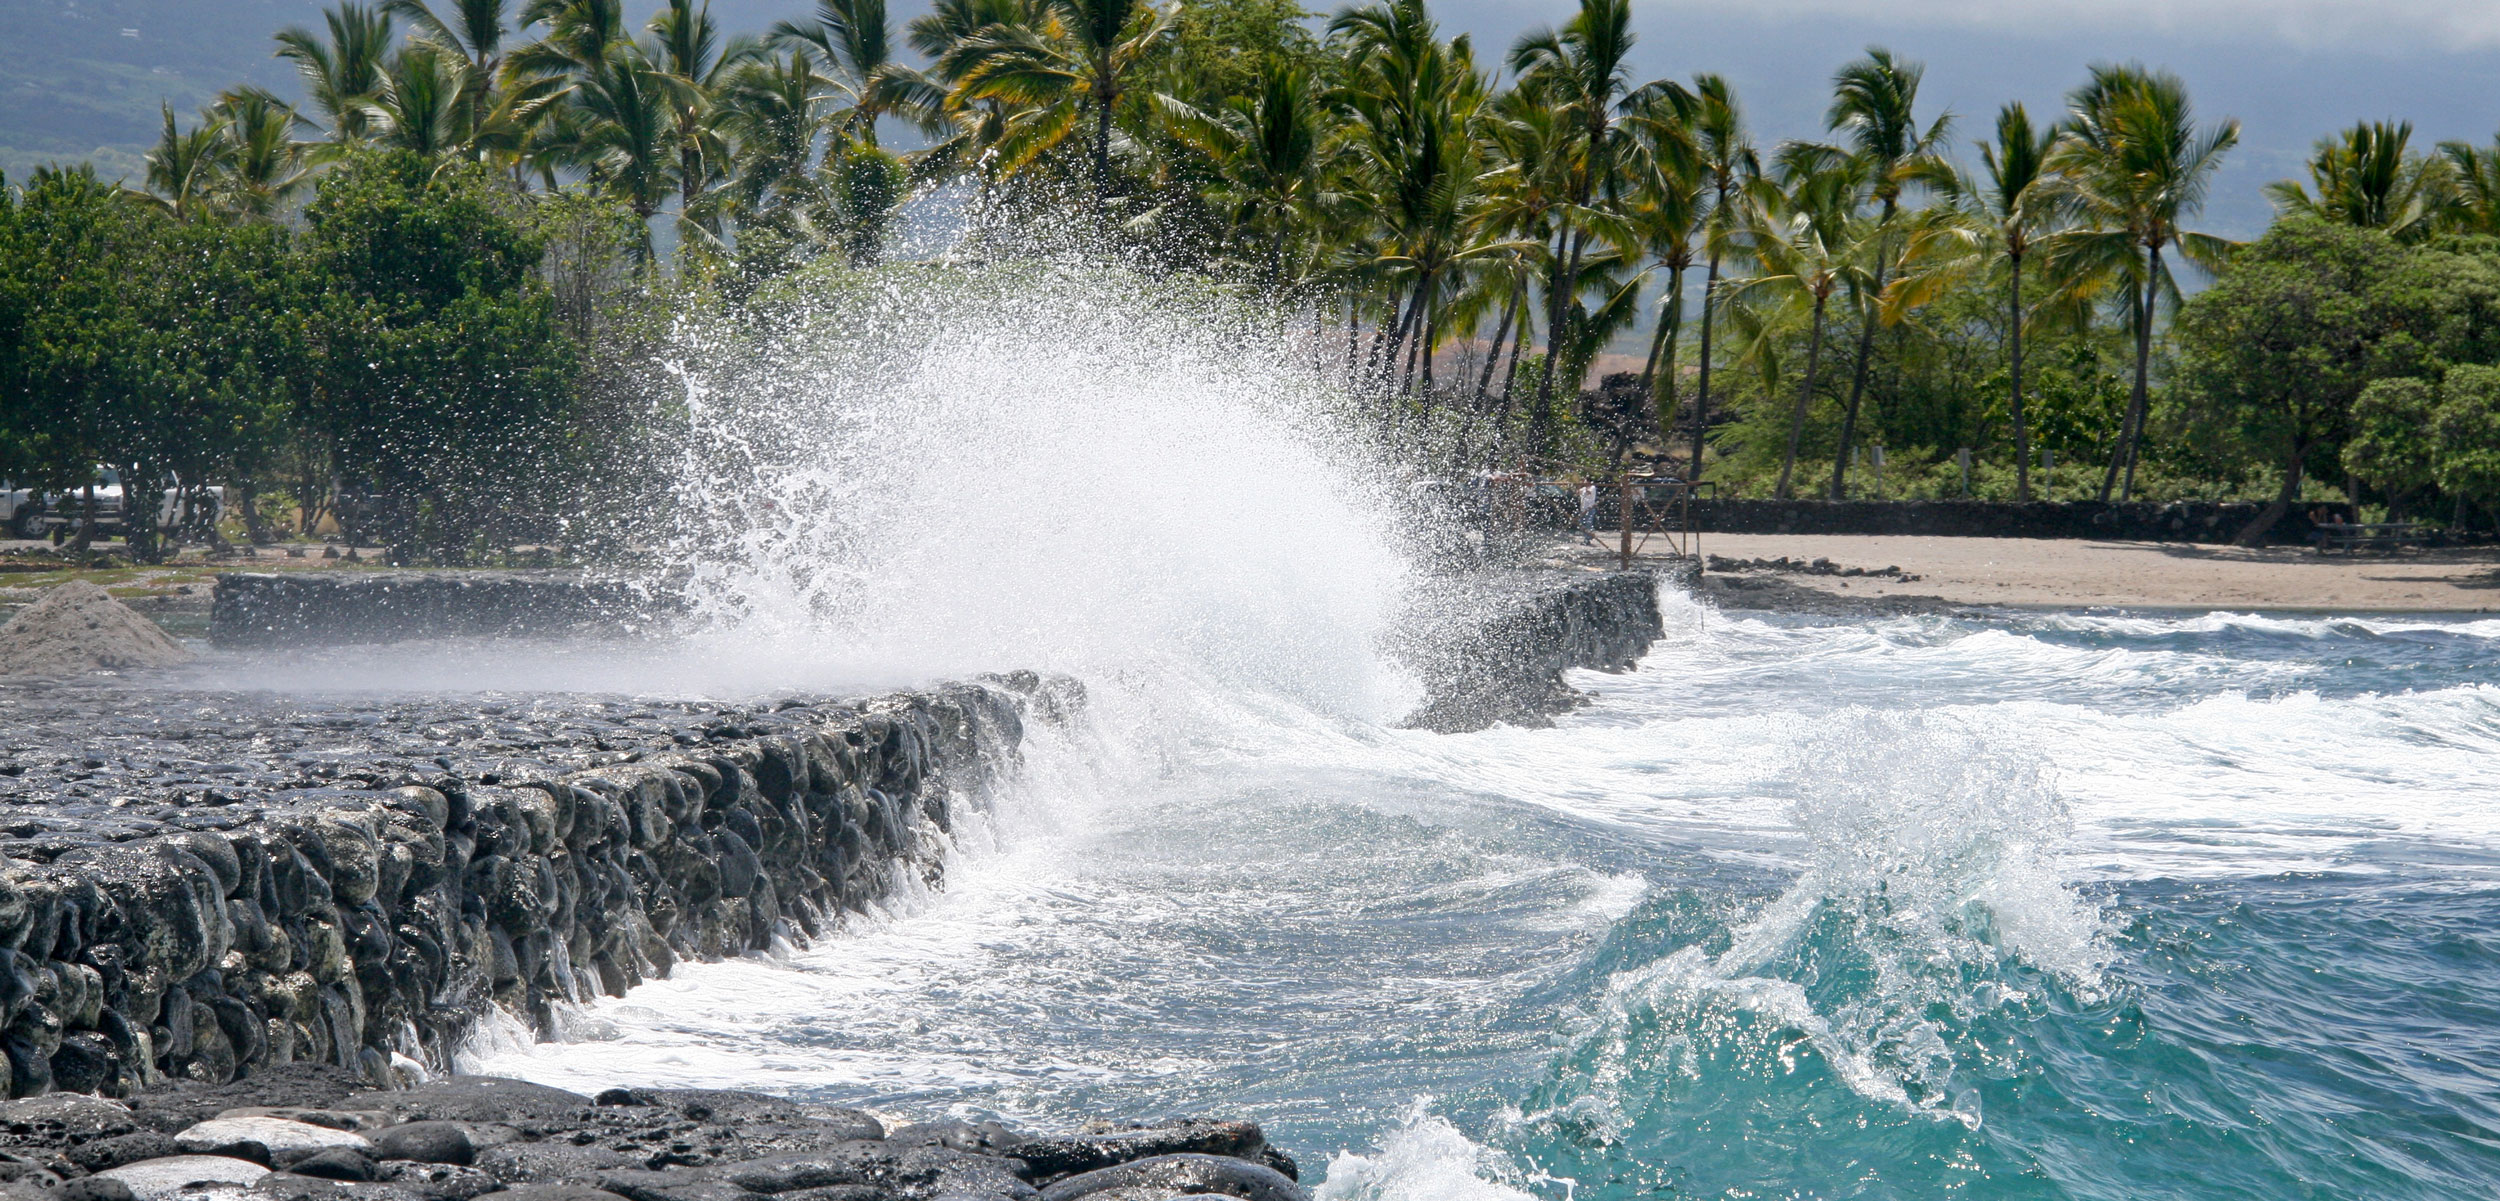 Pacific waves collide against the wall of the Kaloko fishpond on the Island of Hawai'i